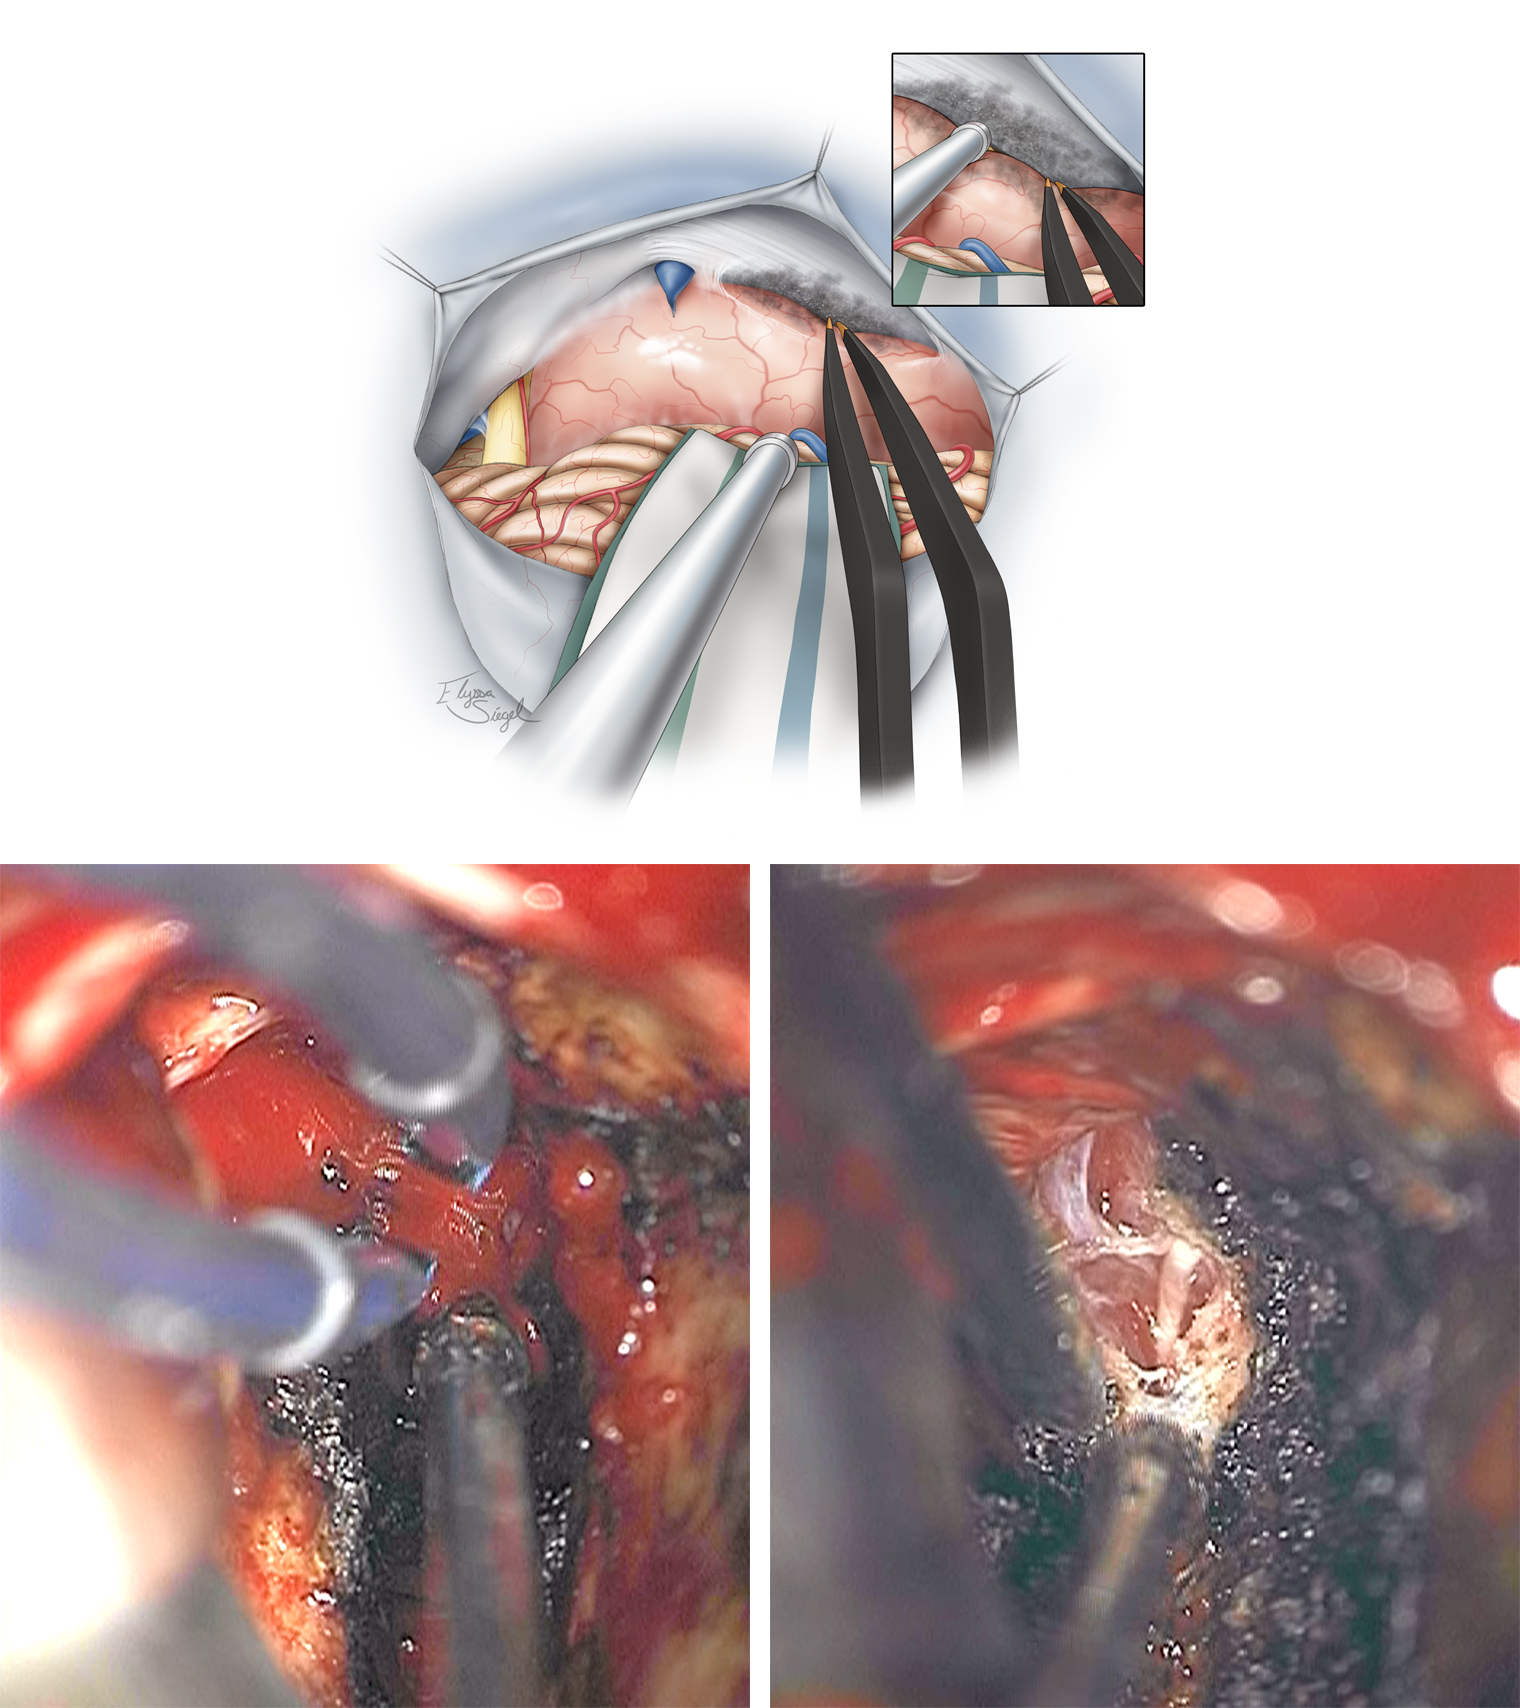 Figure 7: The first important step in managing the tumor involves its devascularization along the petrous dura, petrotentorial junction, and the tentorium. Torrential bleeding from this junction is a common occurrence during mobilization of the tumor (left lower photo). Bipolar coagulation and patience are needed to control the bleeding. The CN IV is displaced anteriorly by the tumor capsule and should be protected and kept out of harm's way (right lower photo).